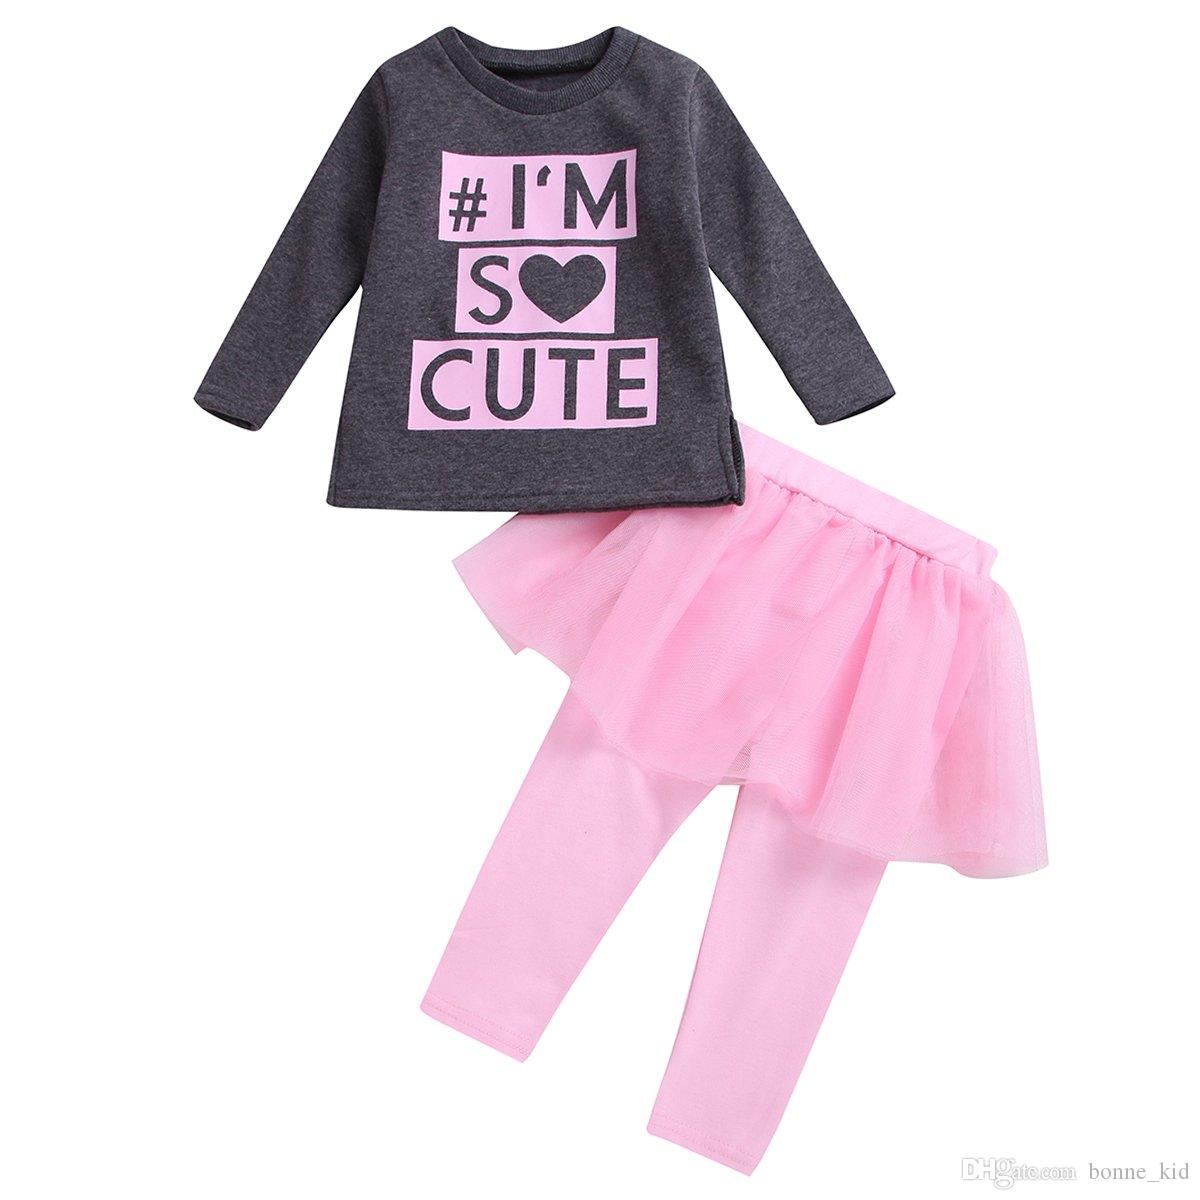 2Pcs Toddler Kids Baby Girls Easter Outfits Set Bunny Sleeveless Tops+Tutu Skirt Summer Clothes 1-5T